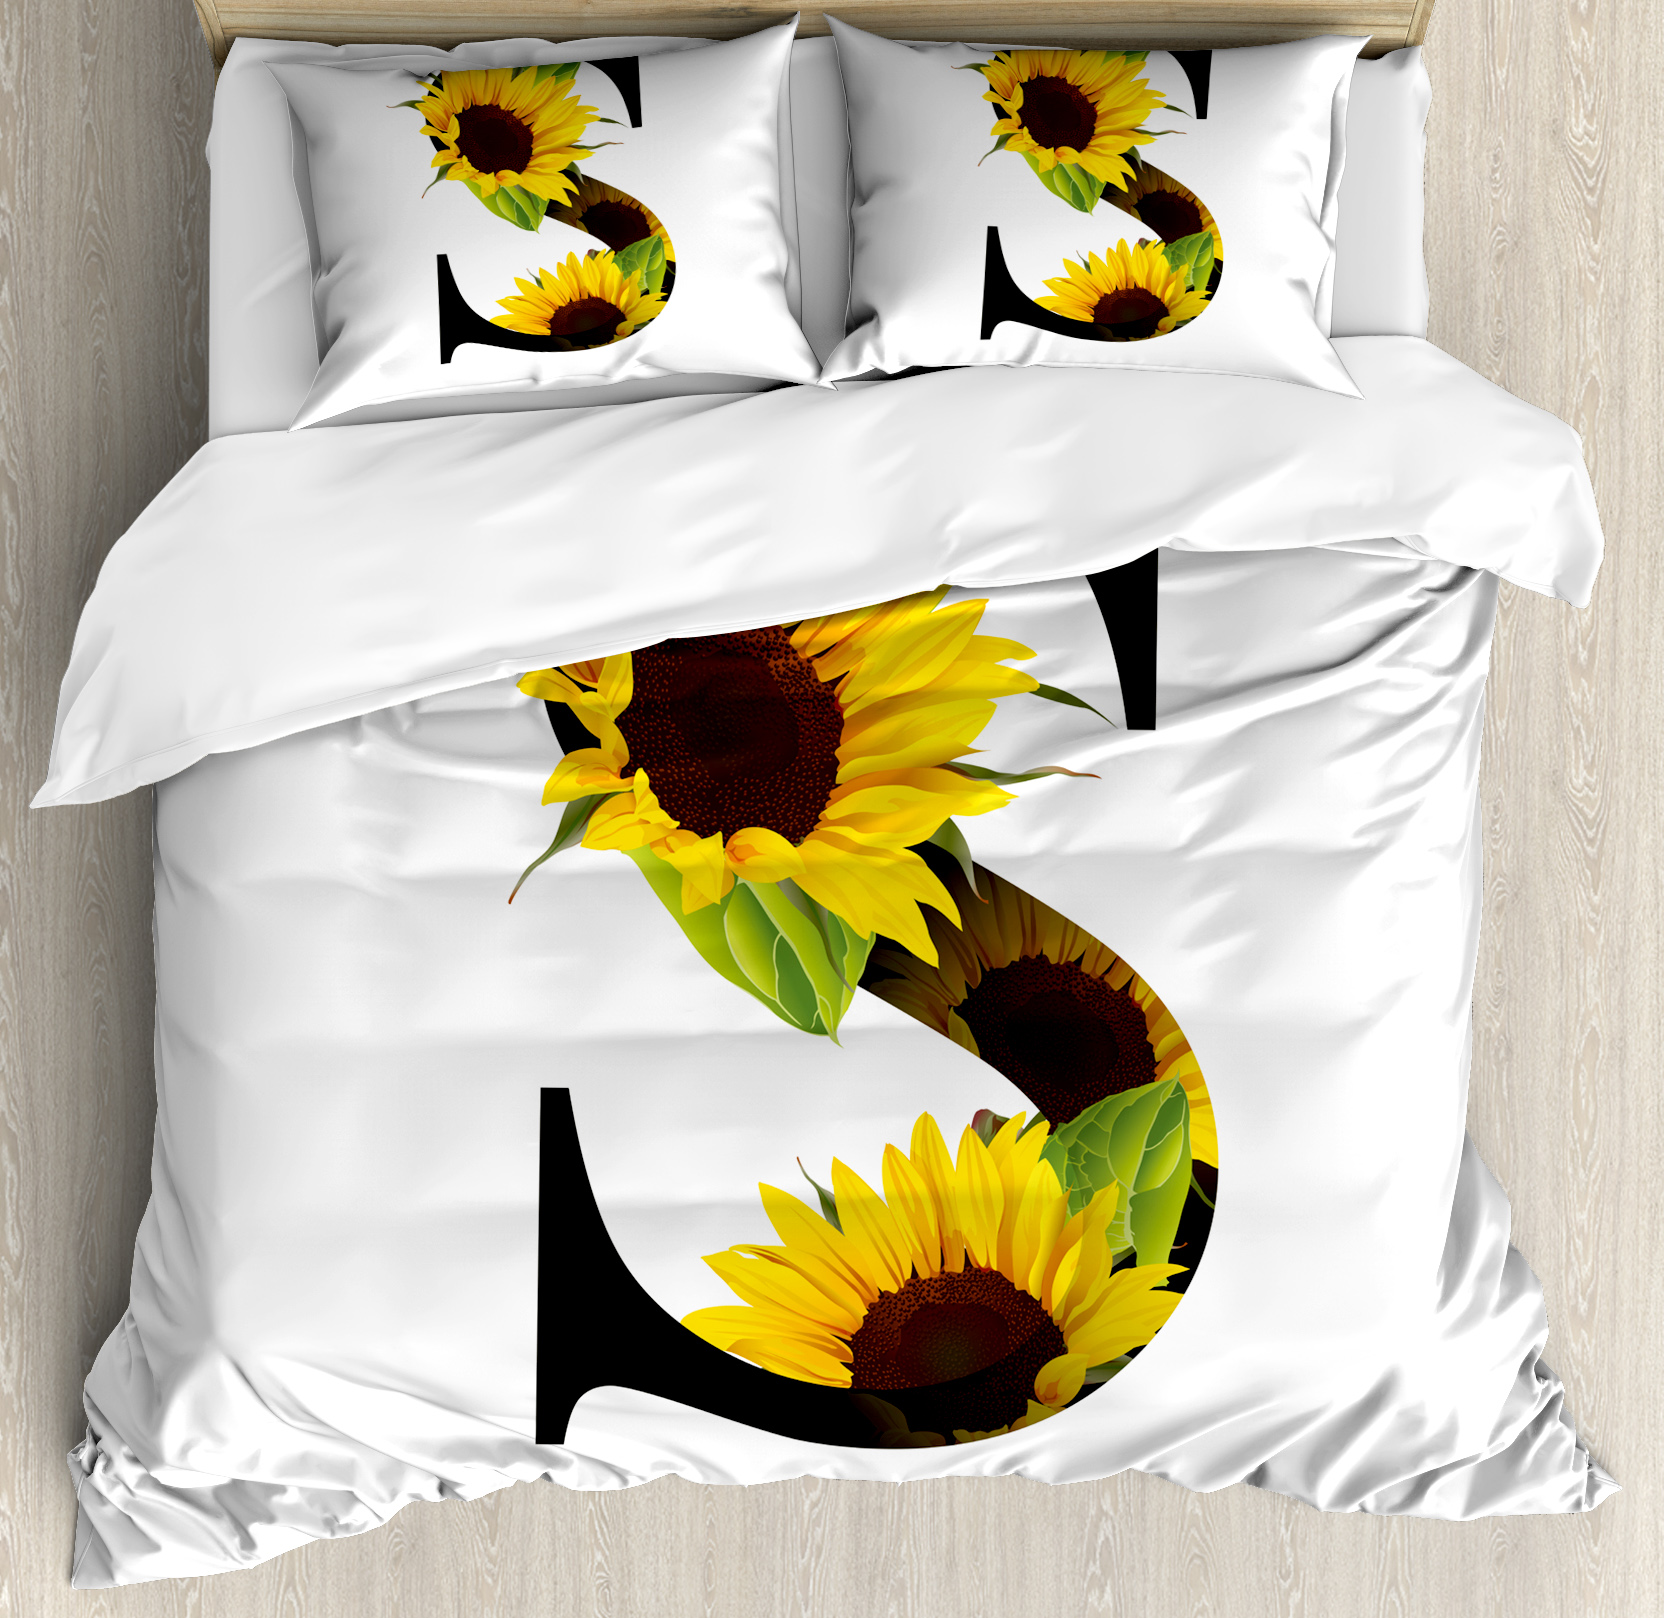 Letter S Queen Size Duvet Cover Set, Letter S with Flora Elements Sunflowers on Dark Colored Abstract Art Print, Decorative 3 Piece Bedding Set with 2 Pillow Shams, Yellow Green Black, by Ambesonne